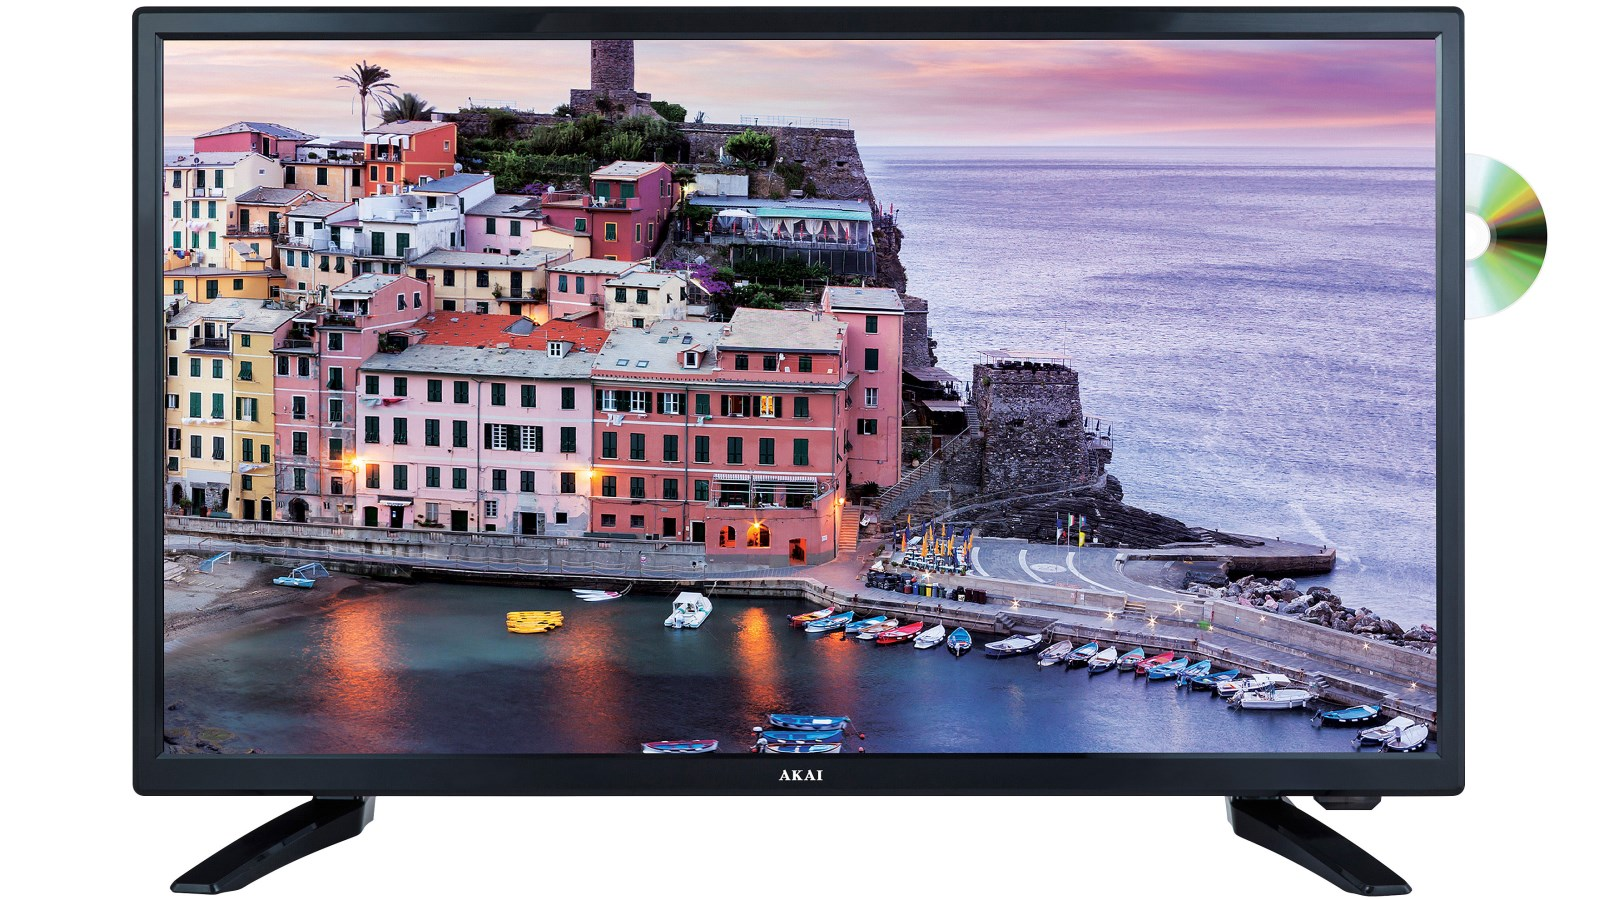 Akai 24-inch FHD LED LCD TV with DVD Player